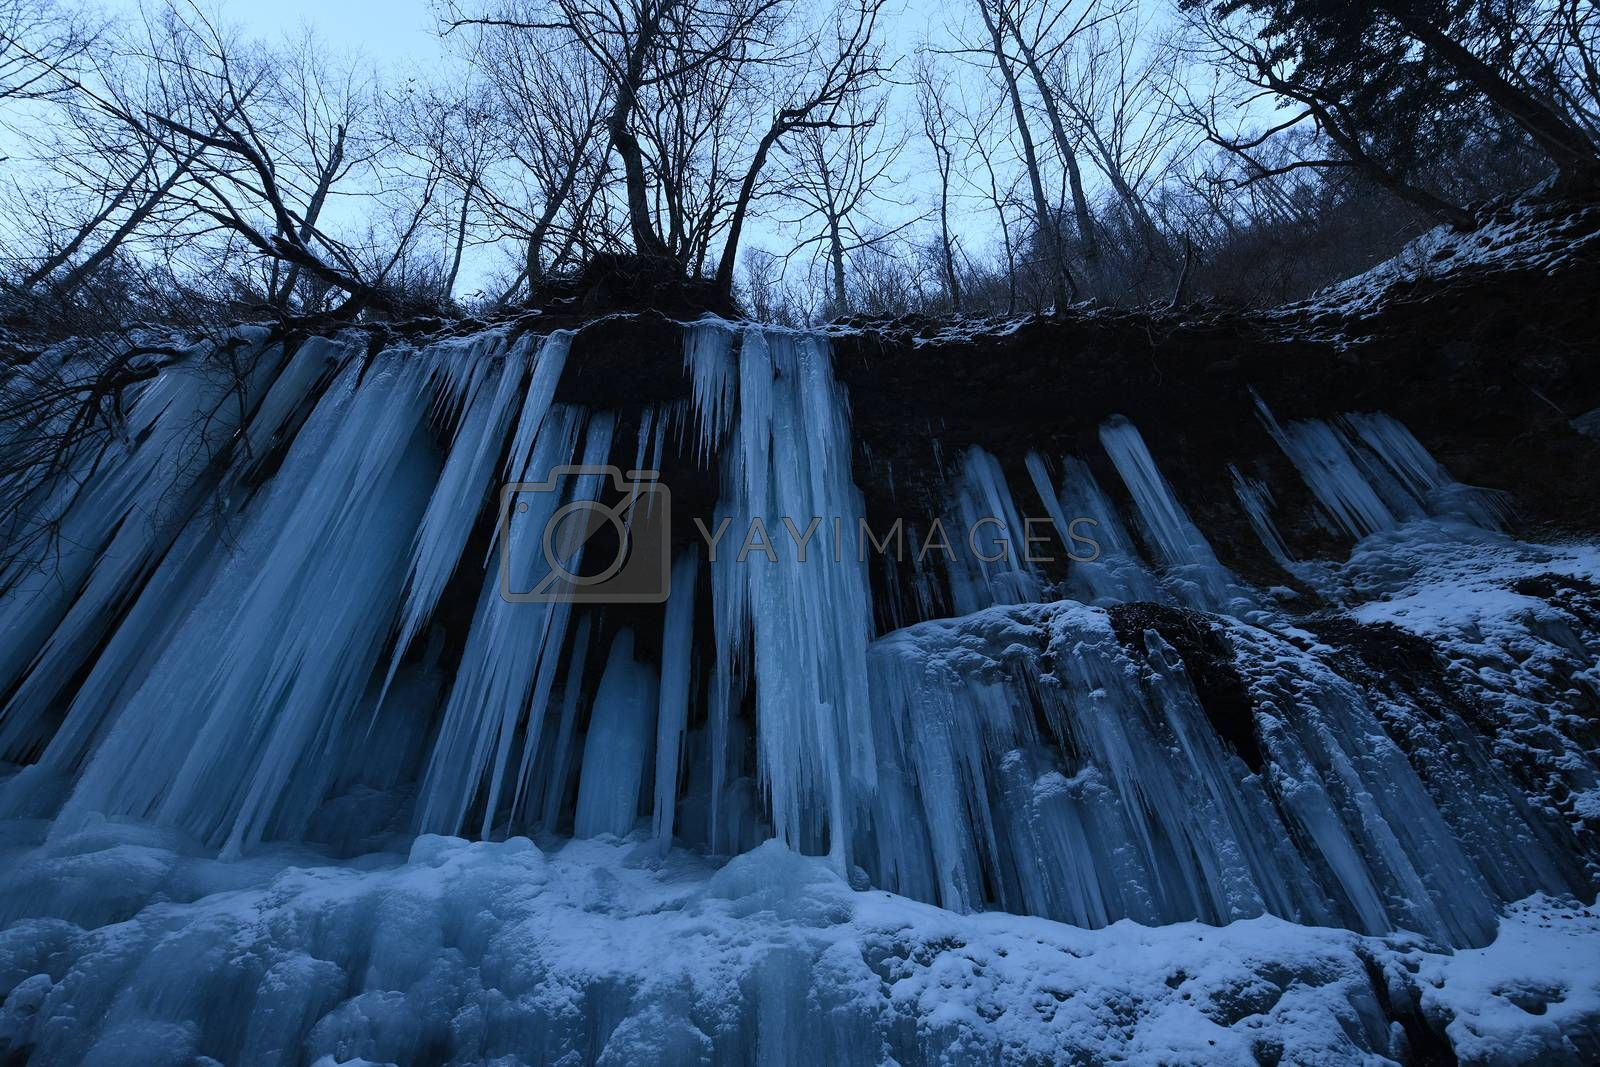 Royalty free image of Icicles from Frozen waterfall in Nagano Japan by porbital